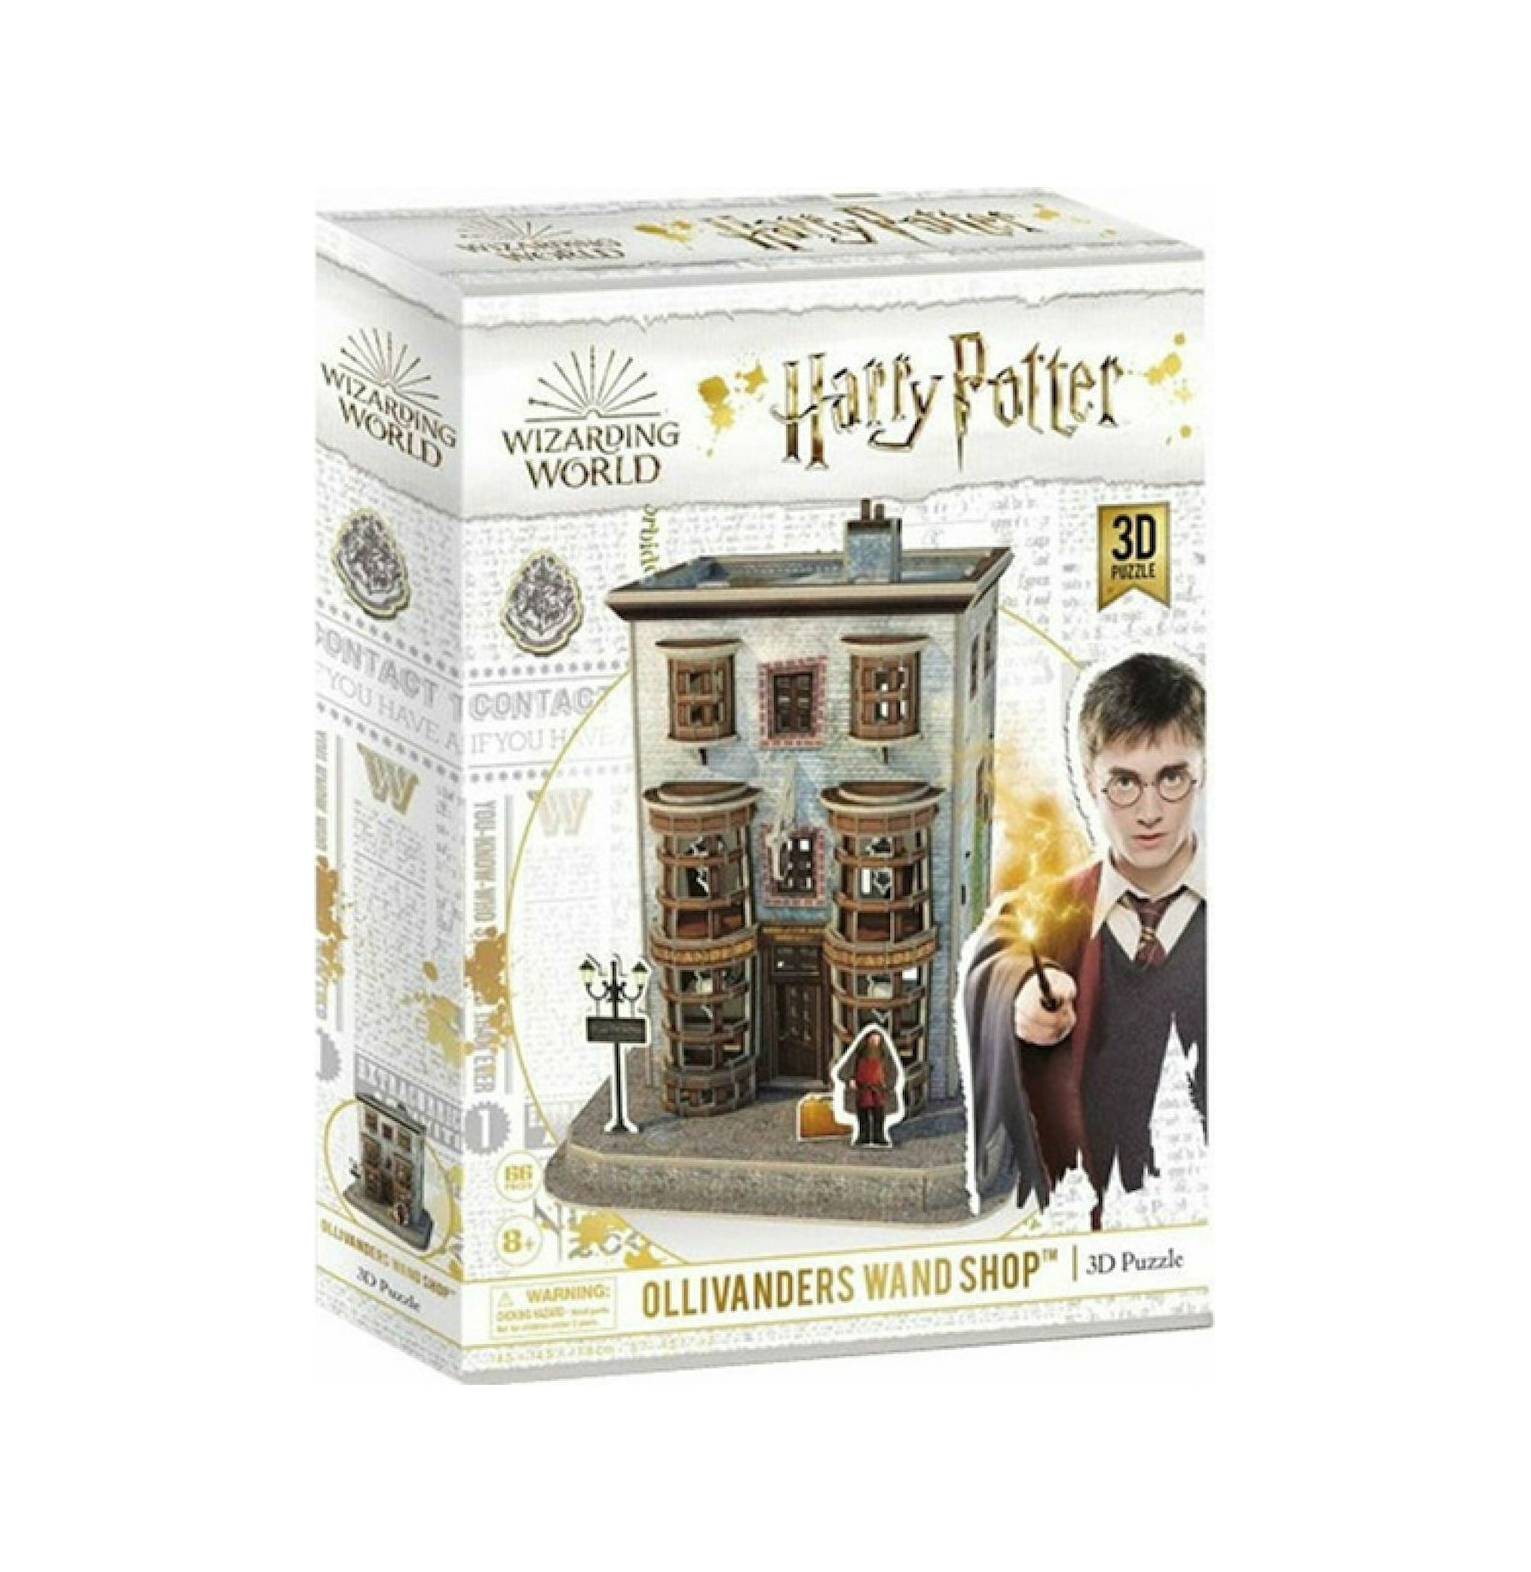 Harry Potter Diagon Alley Ollivanders Wand Shop 3D 66pcs DS1006h 420007